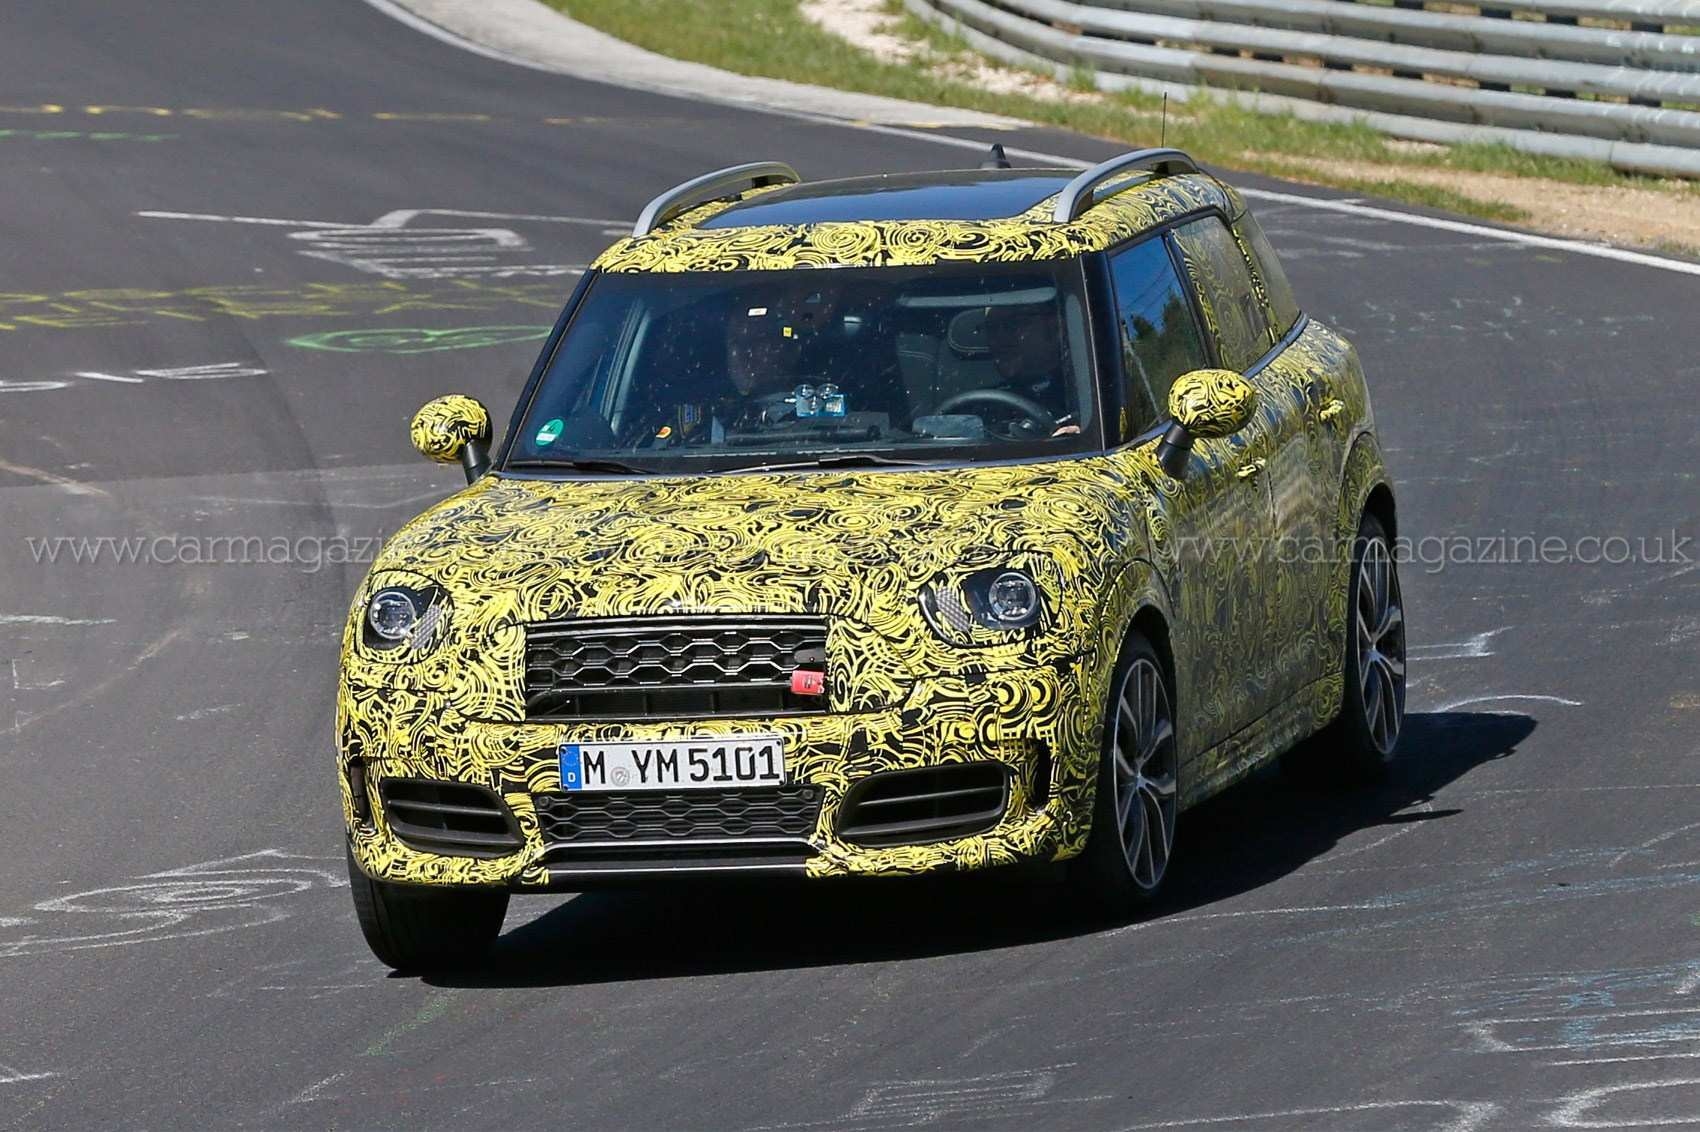 86 A Spy Shots Mini Countryman Model